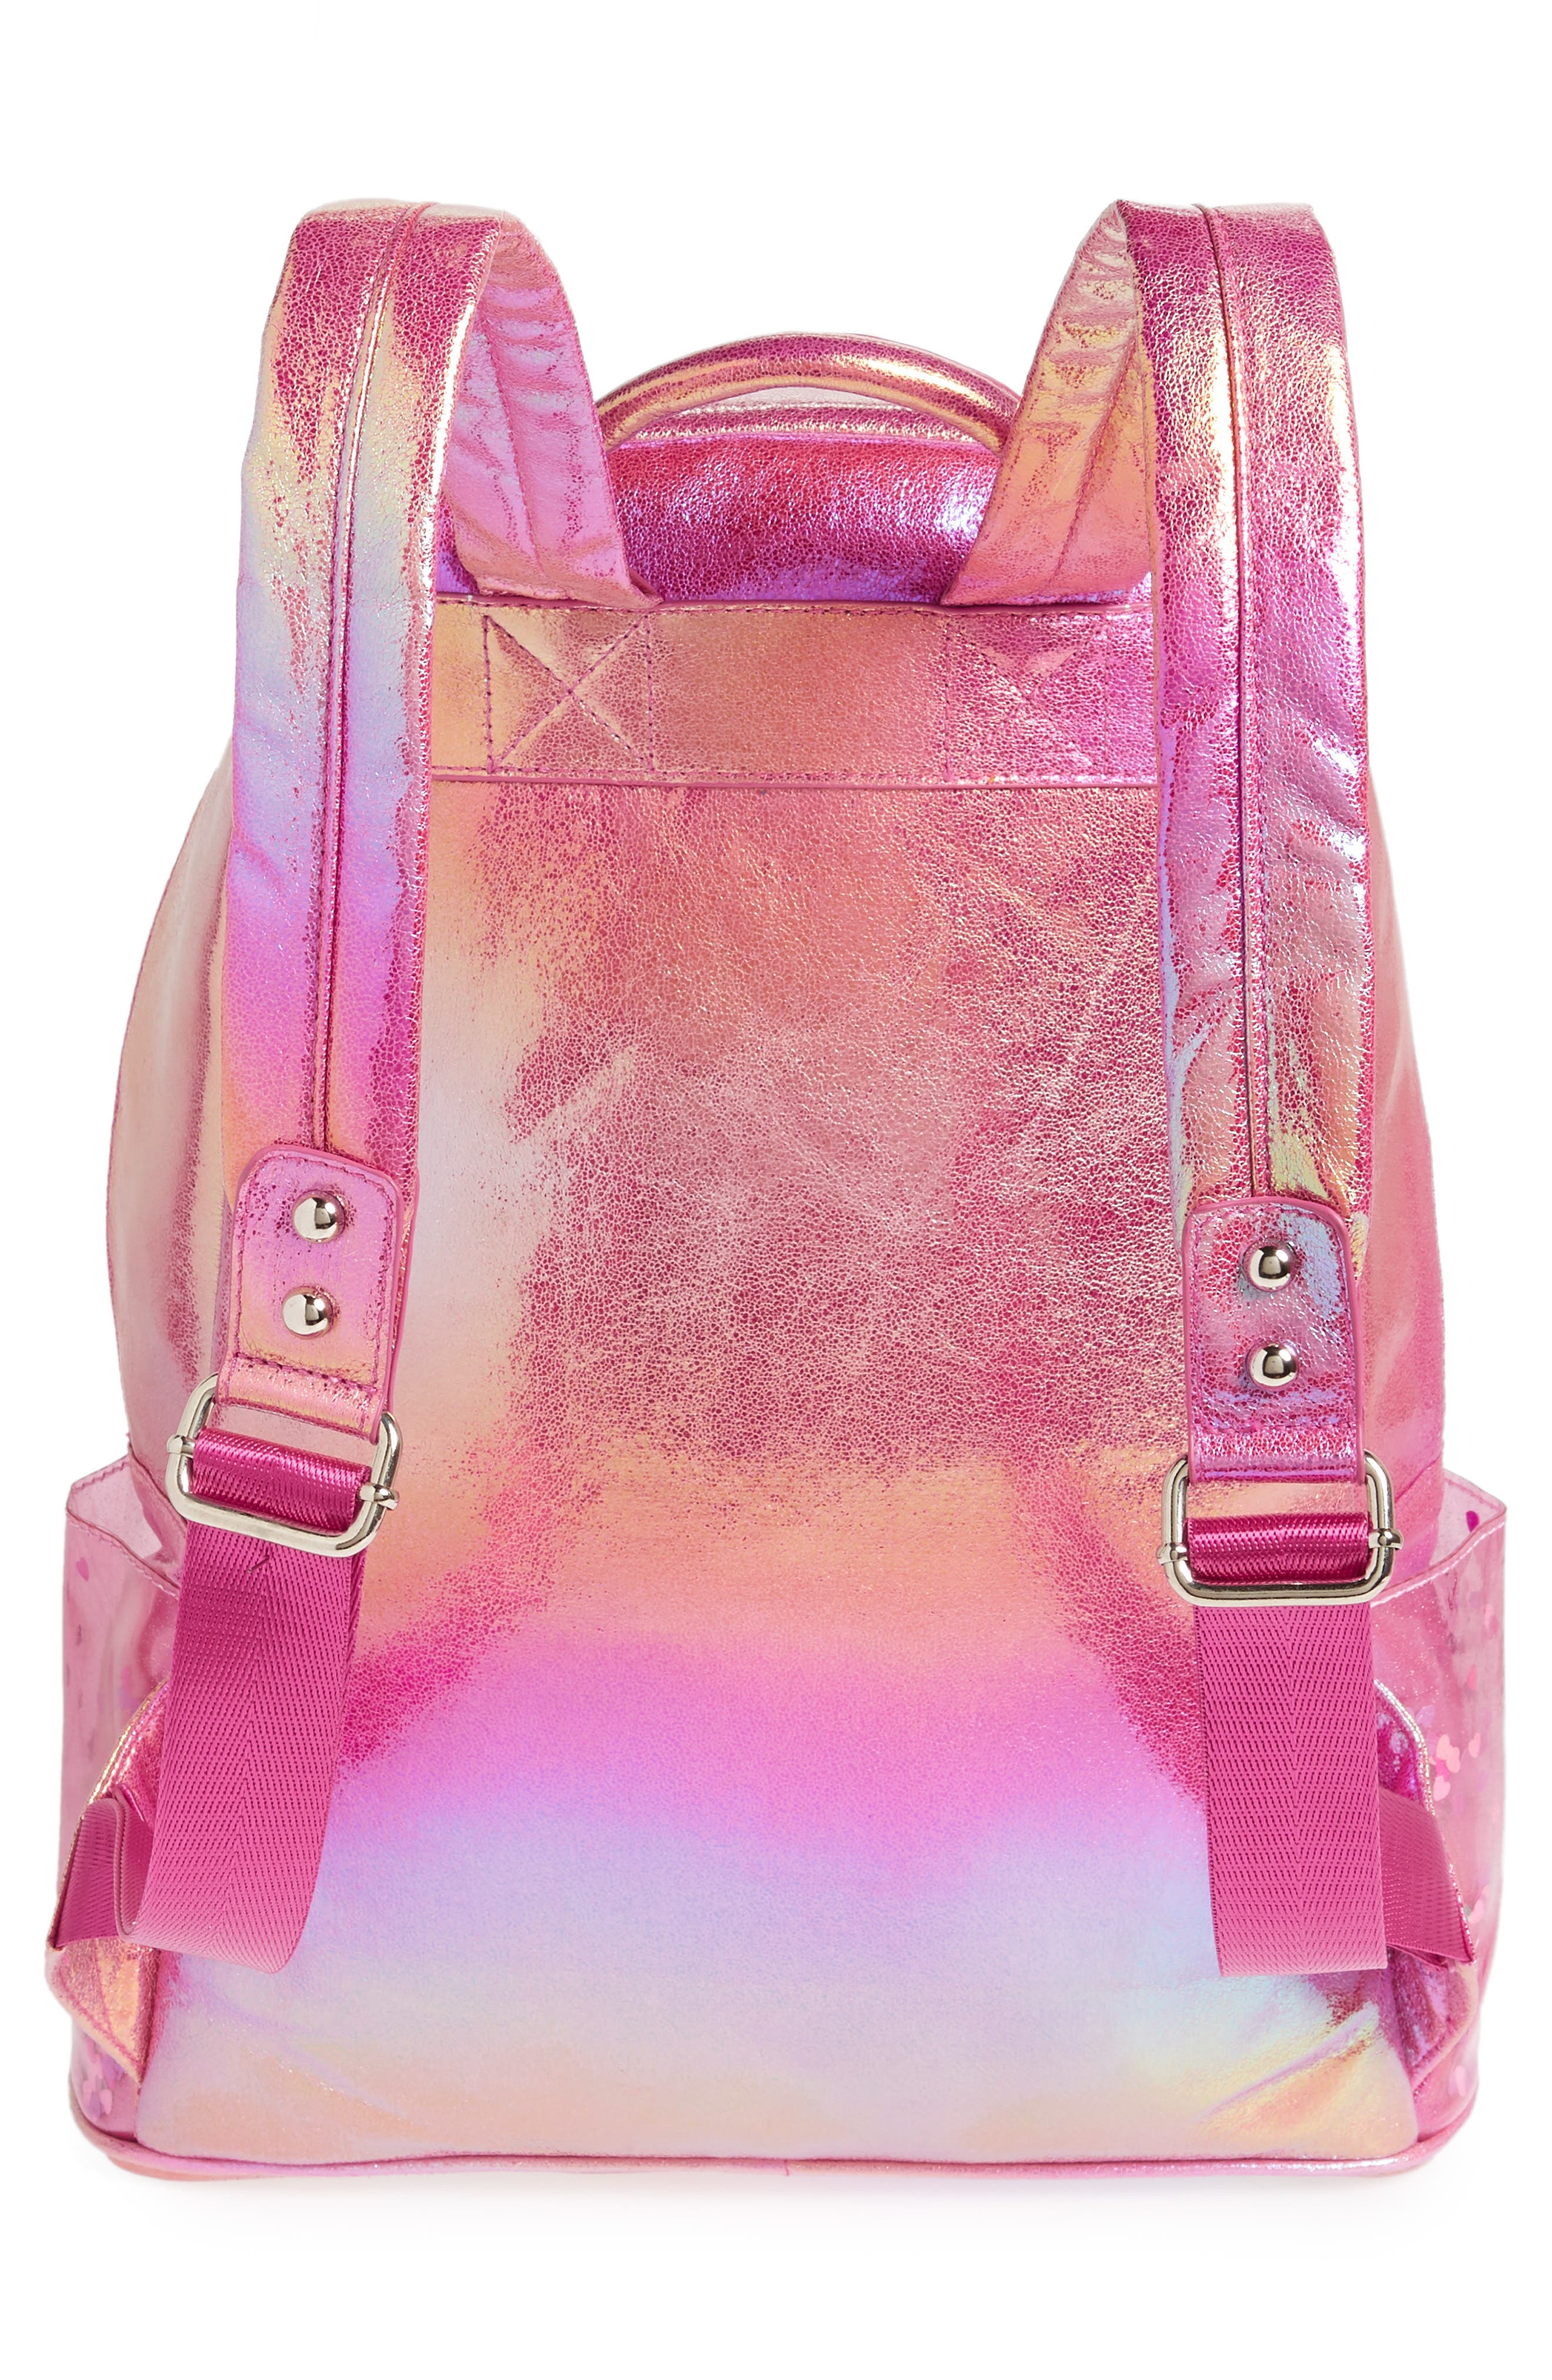 Heart Confetti Holographic Backpack,                             Alternate thumbnail 2, color,                             Pink